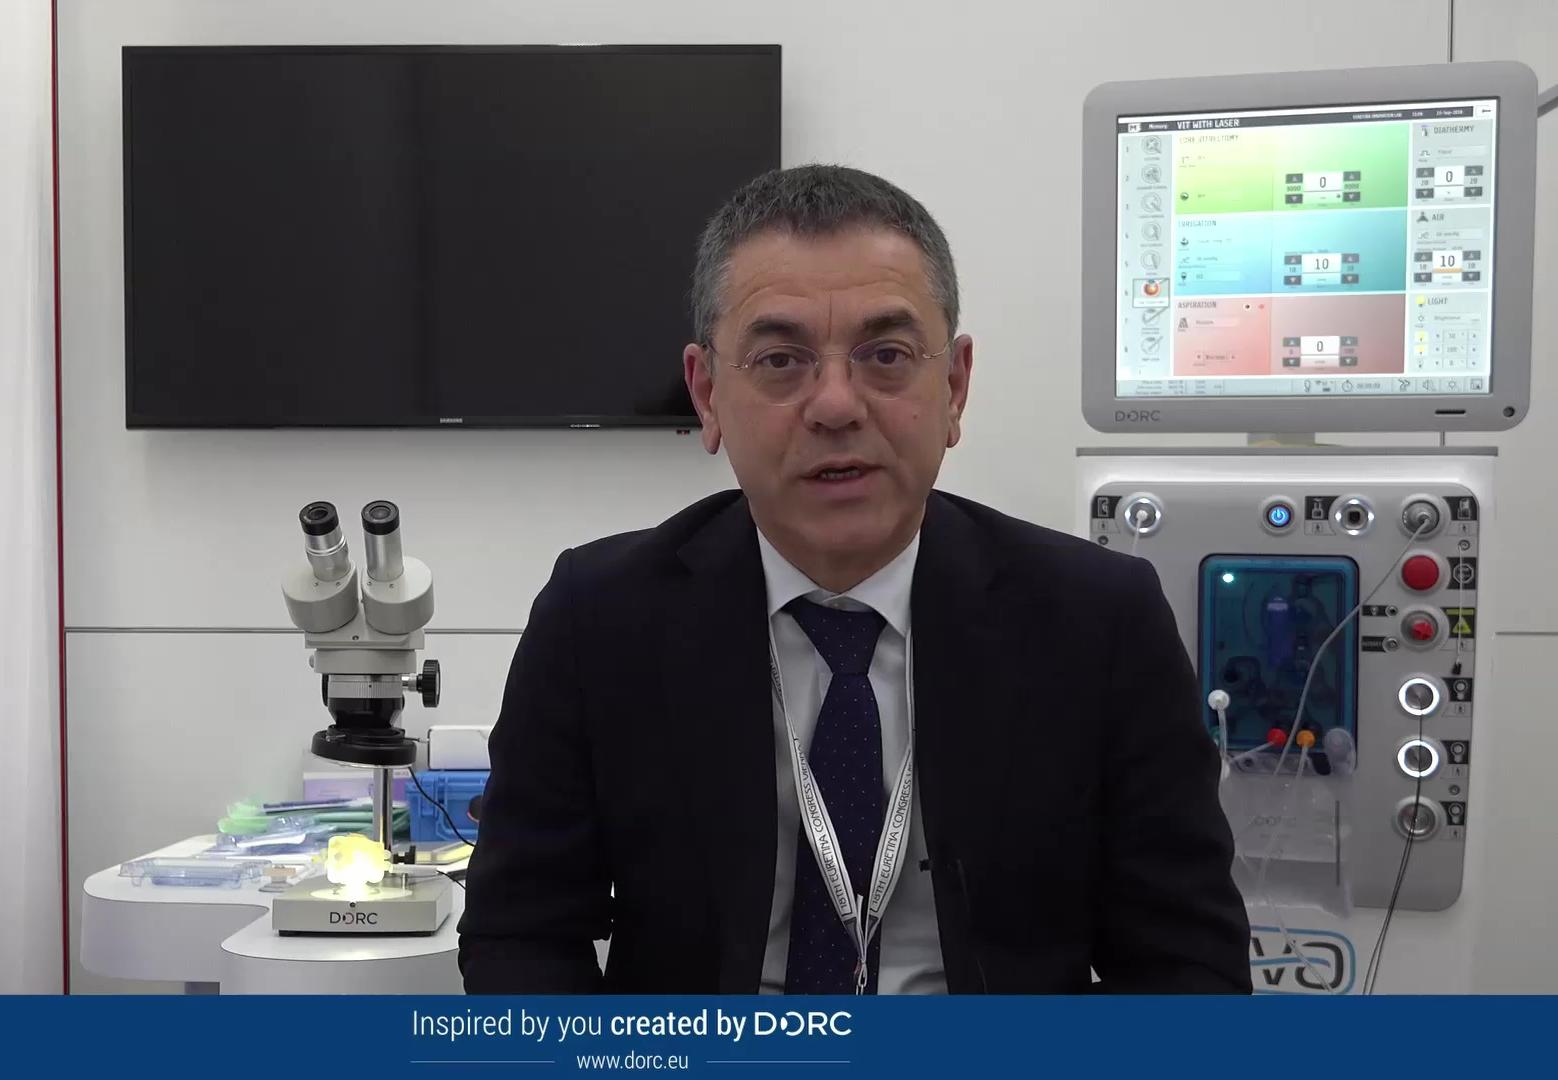 Professor Avci, Turkey, about EVA and DORC instruments